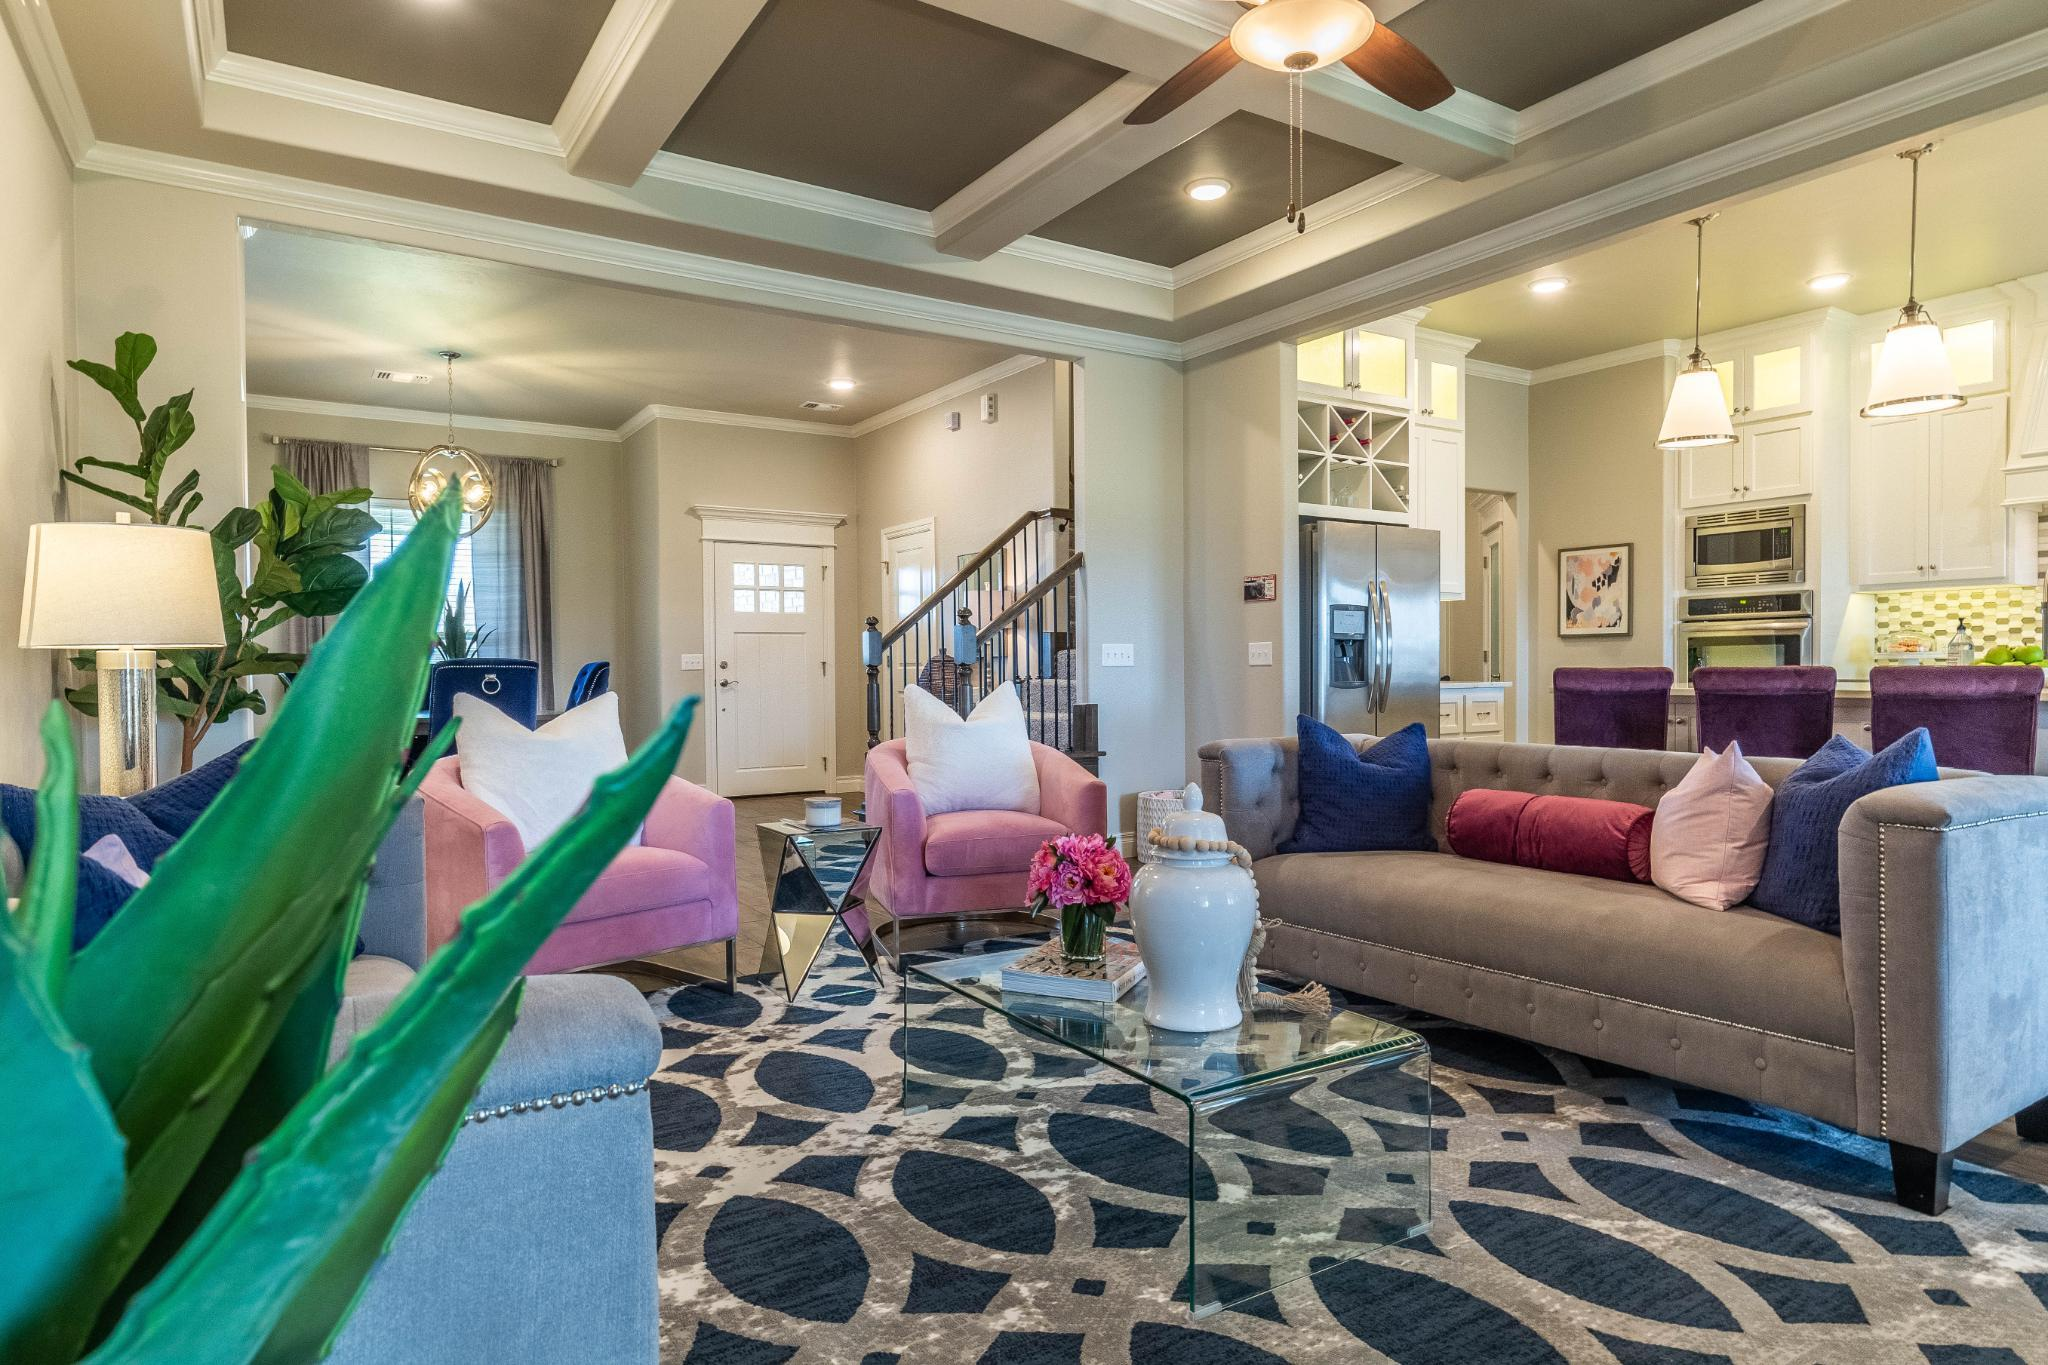 'Highland Village' by Homes By Taber in Oklahoma City